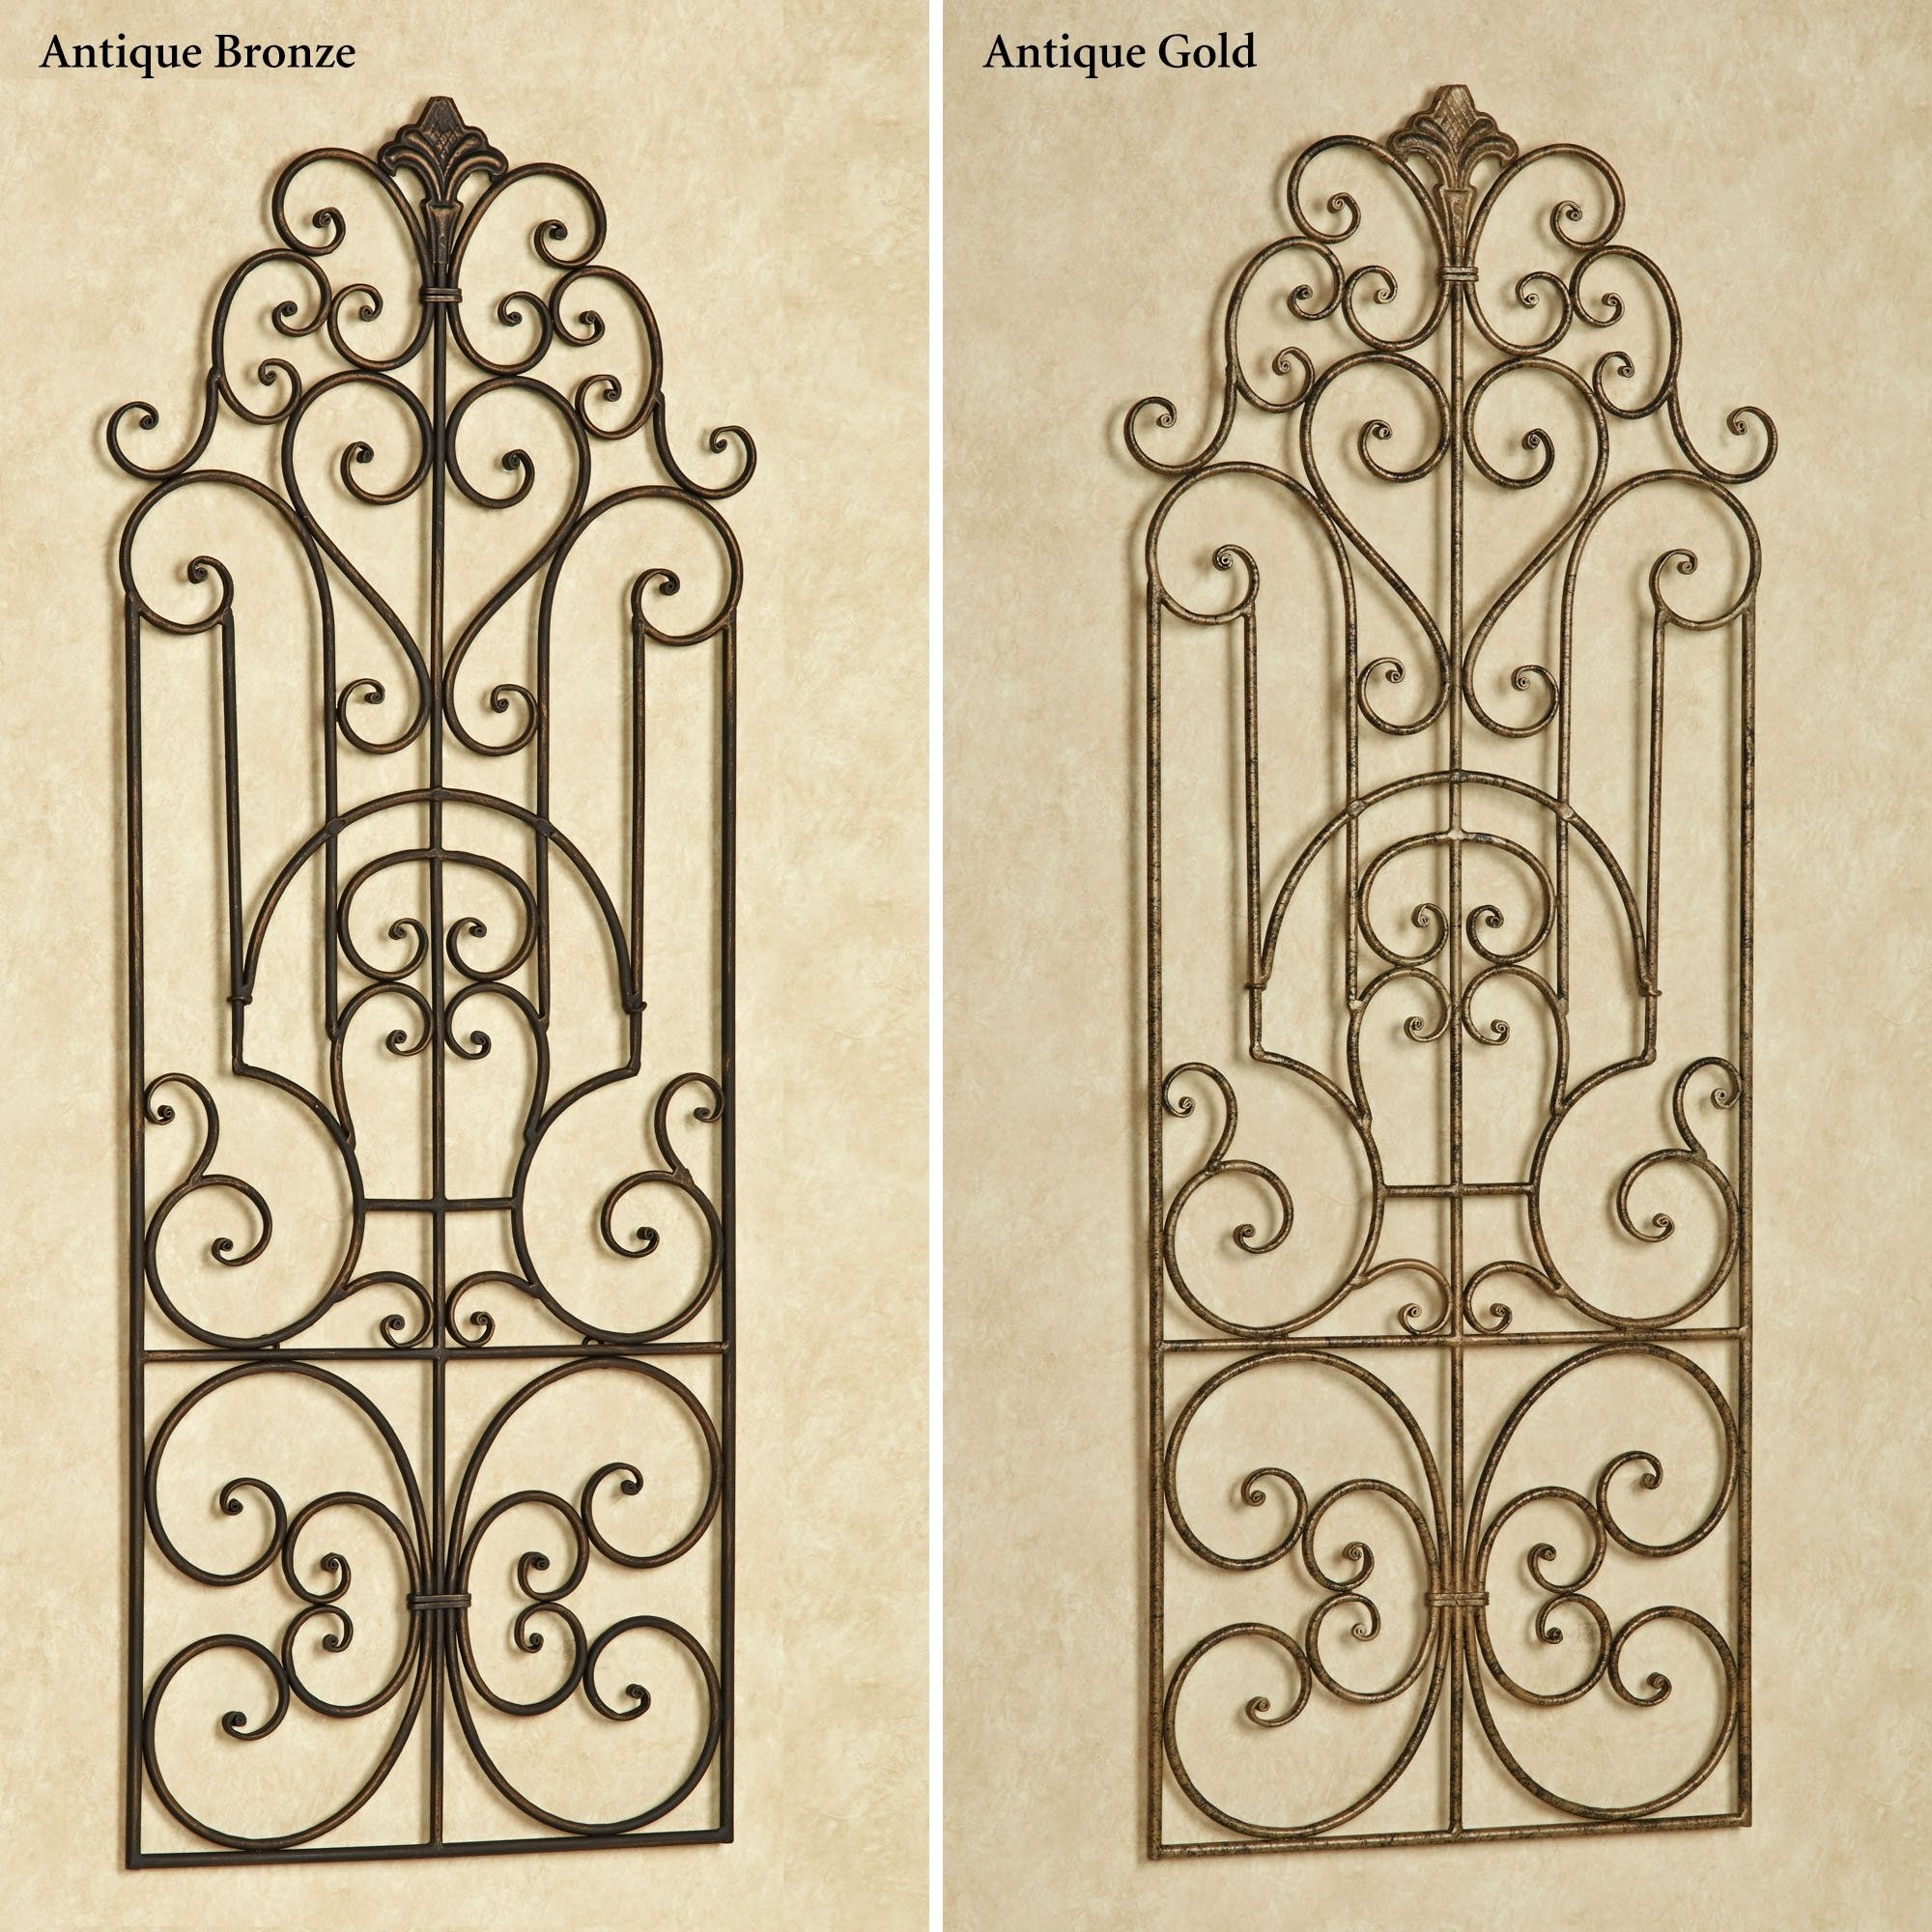 Large Metal Wall Decor Hobby Lobby Wrought Iron Kitchen Art Canada inside Hobby Lobby Metal Wall Art (Image 8 of 20)